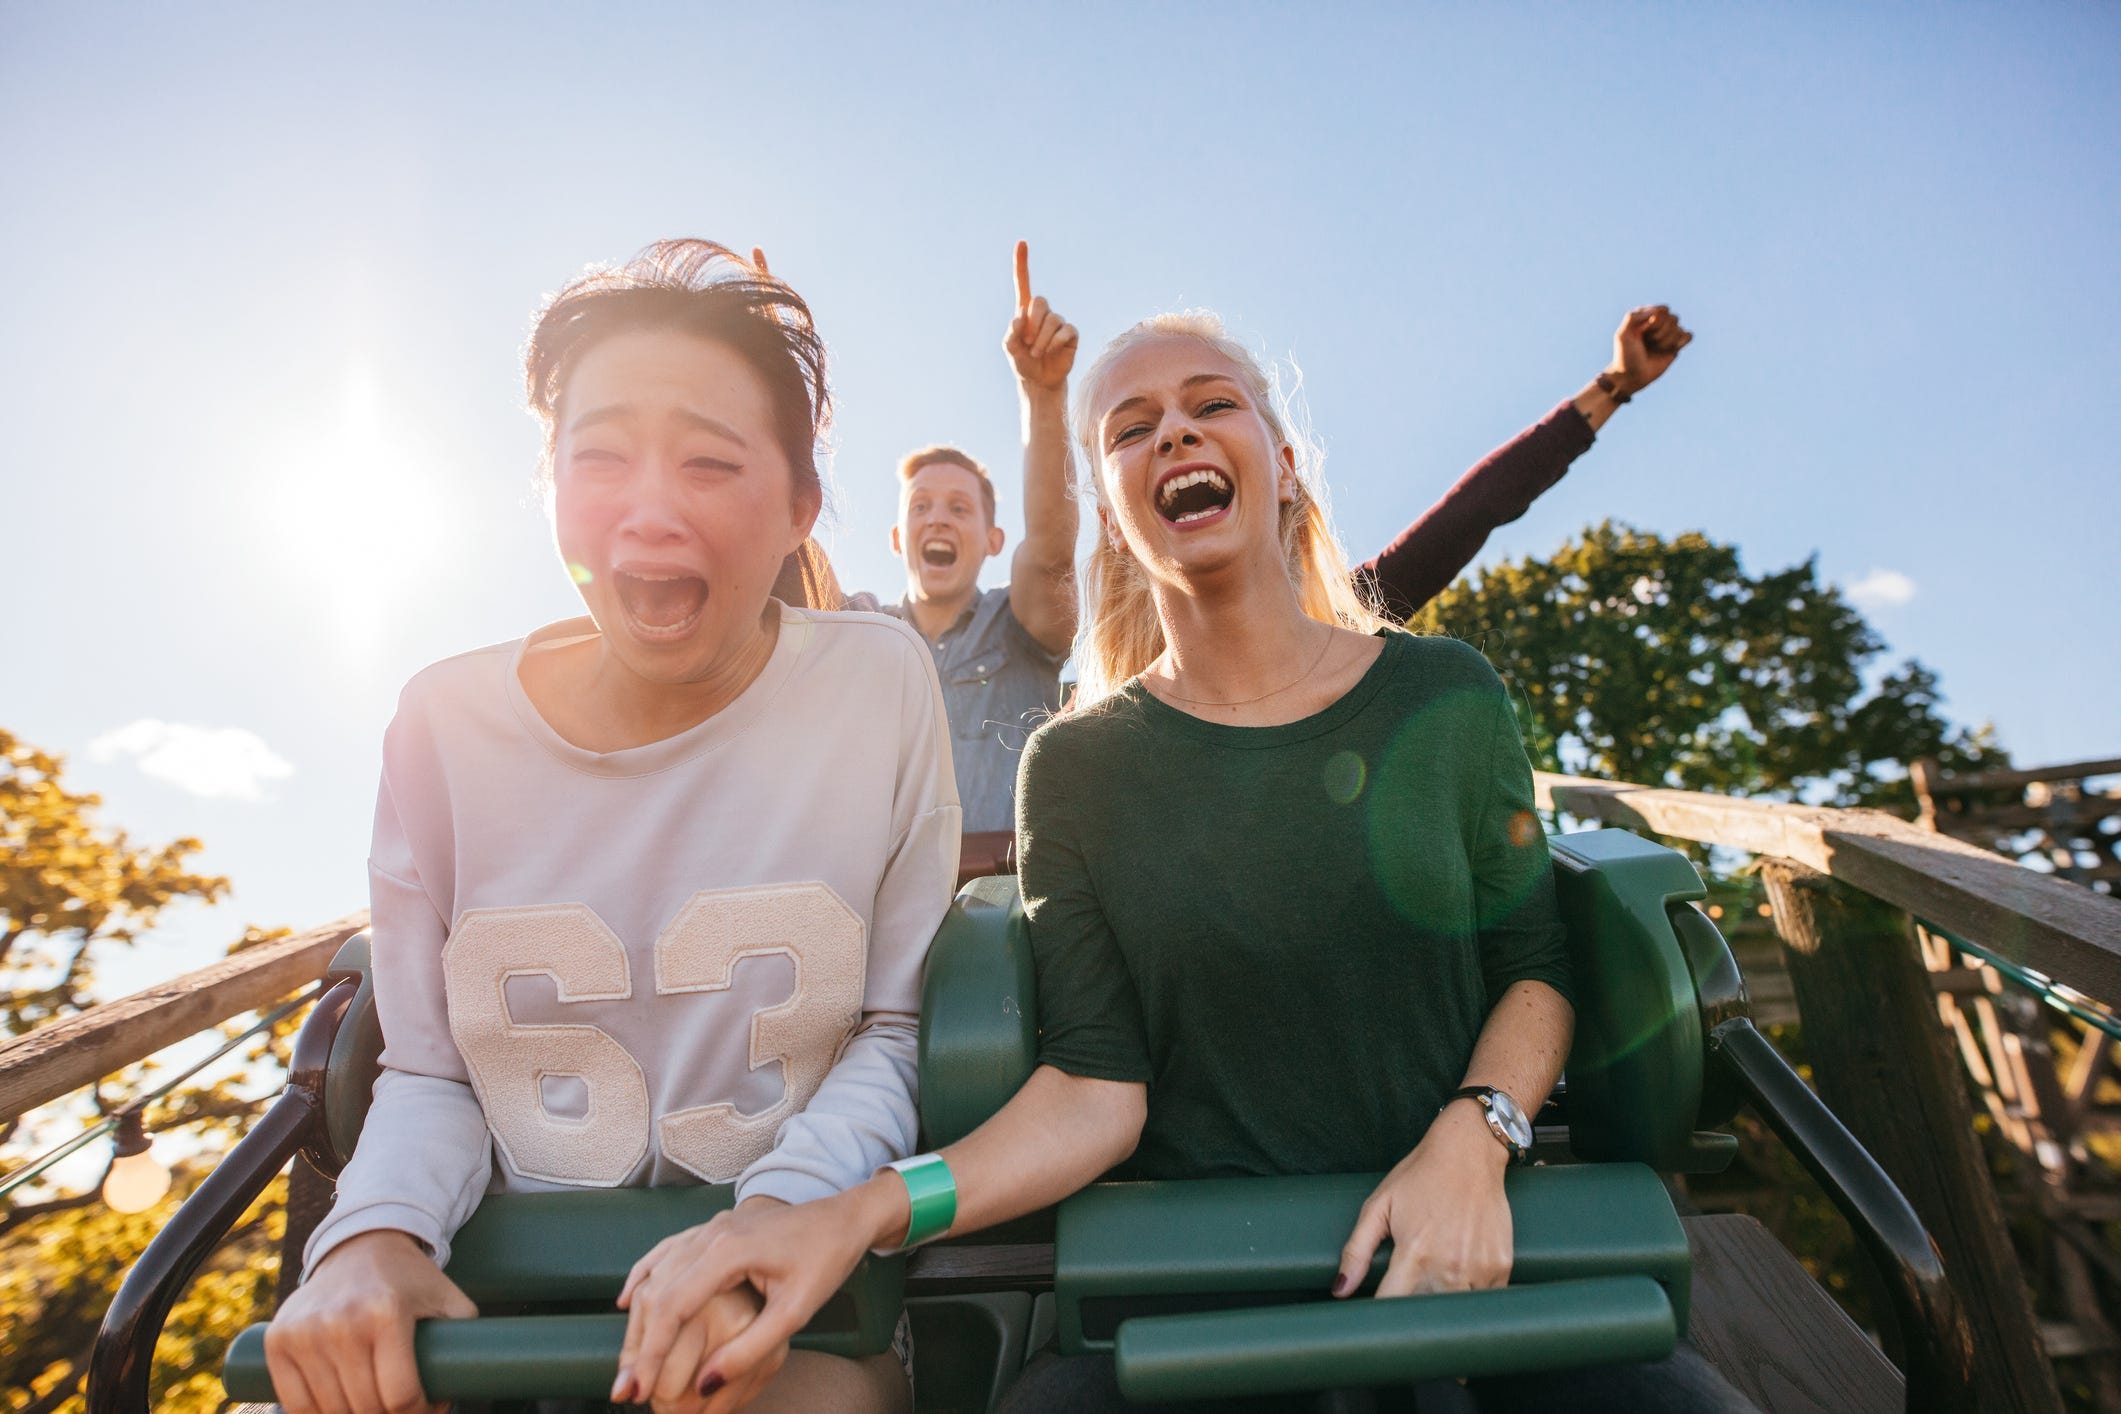 With theme parks planning to reopen, California trade group has recommendations to address COVID and screaming